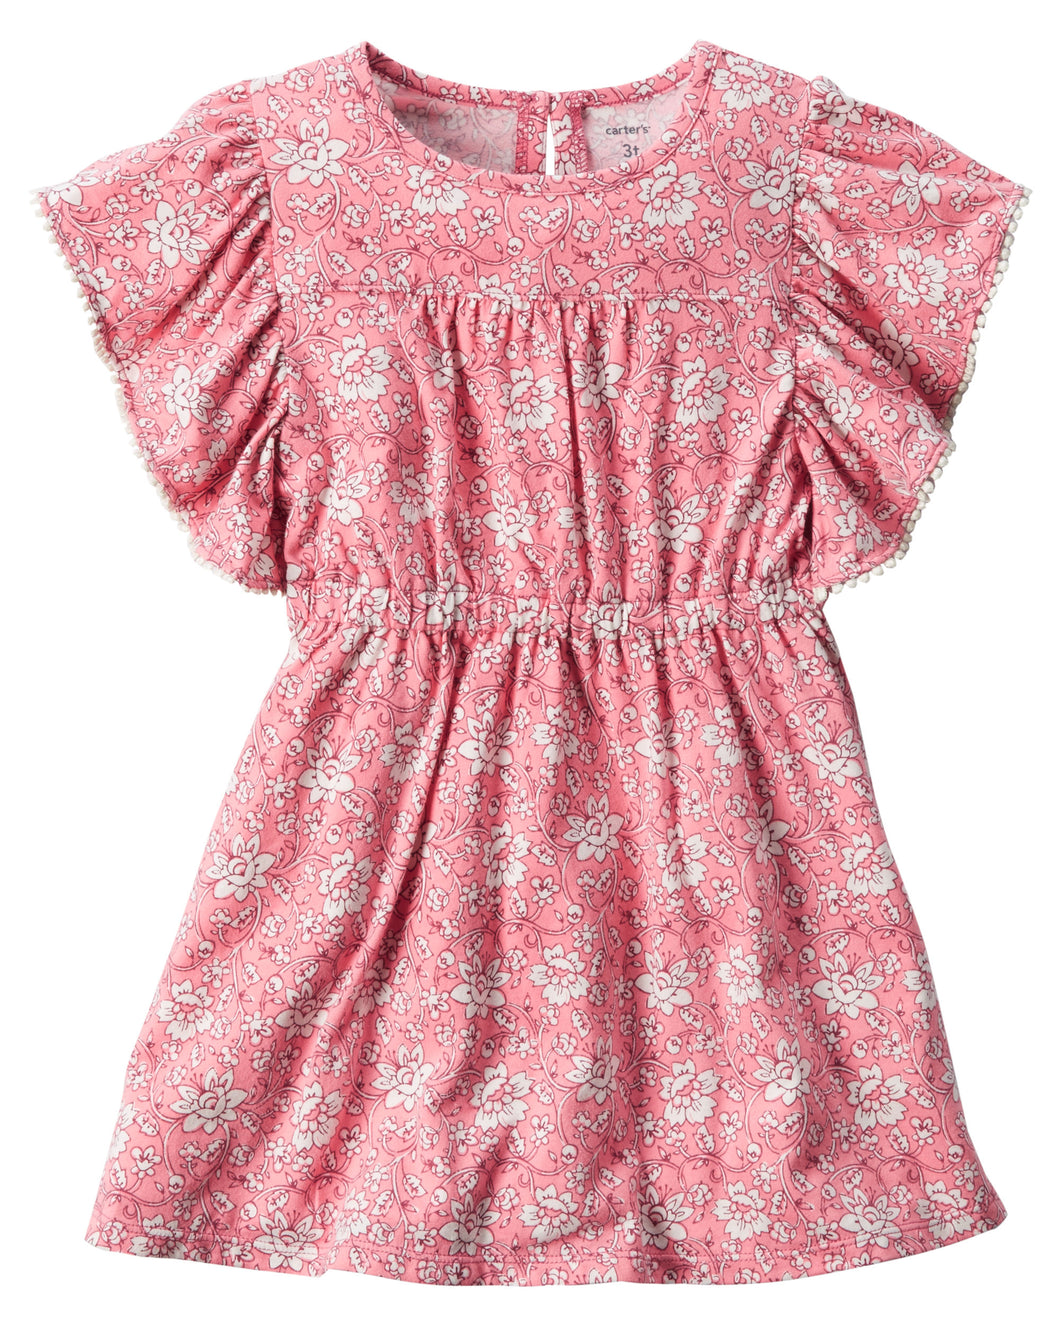 CAGL163 Carter's Ruffle-Sleeve Floral Dress